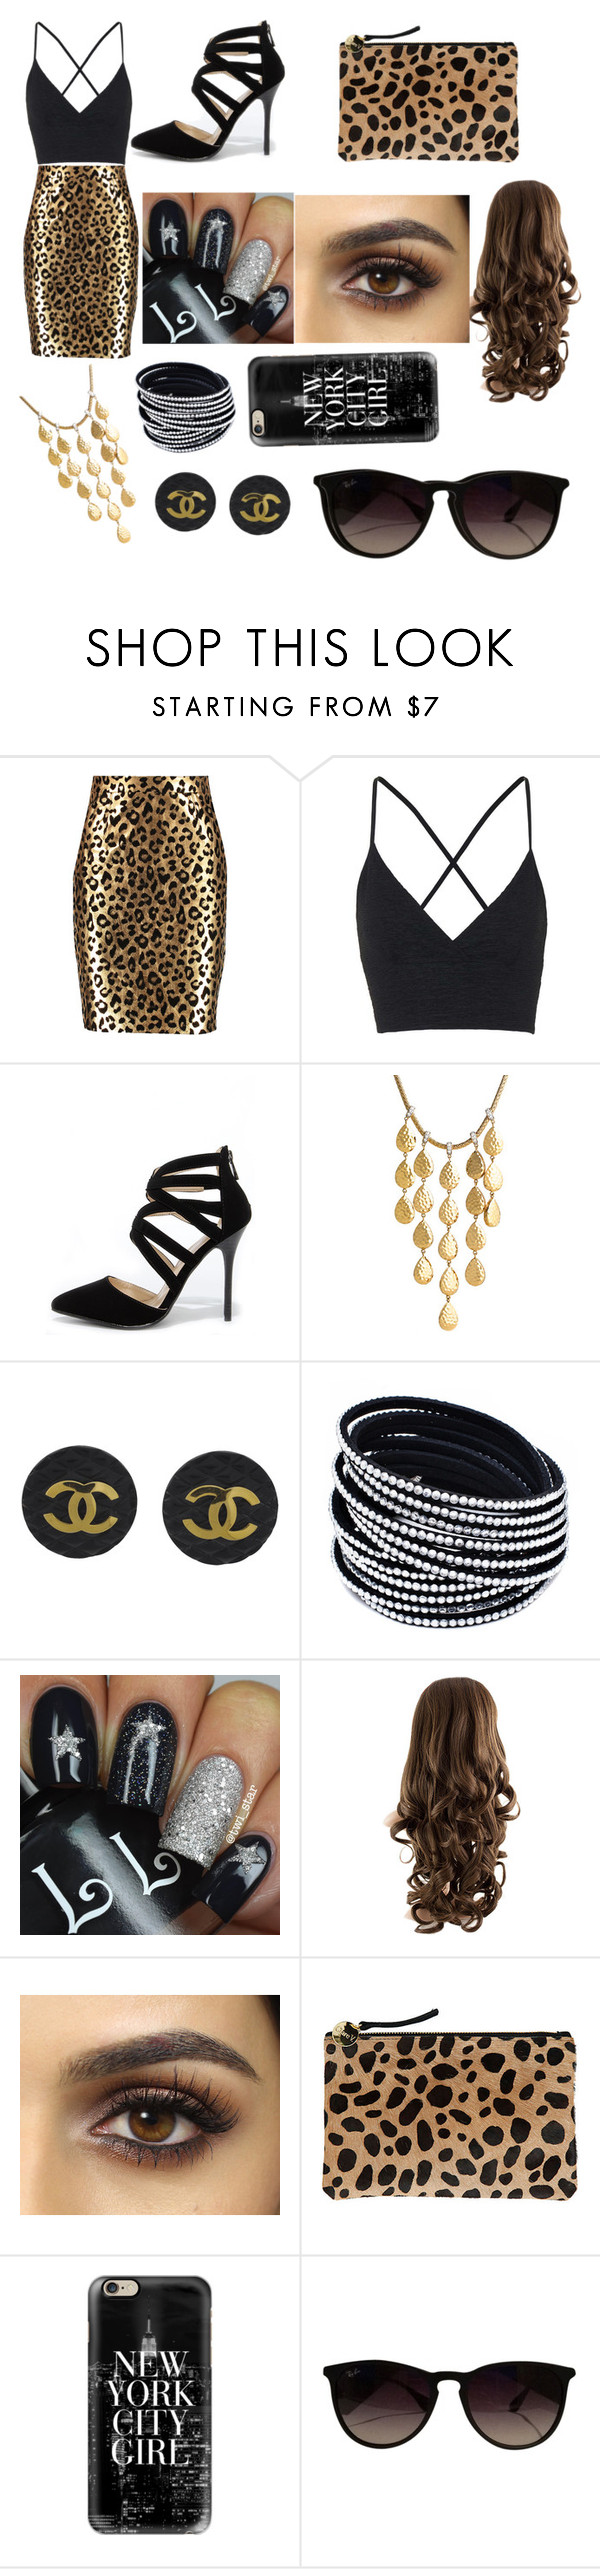 """""""Diva girl"""" by fashion-designer4703 ❤ liked on Polyvore featuring Milly, Topshop, Anne Michelle, John Hardy, Chanel, Clare V., Casetify, Ray-Ban, women's clothing and women's fashion"""